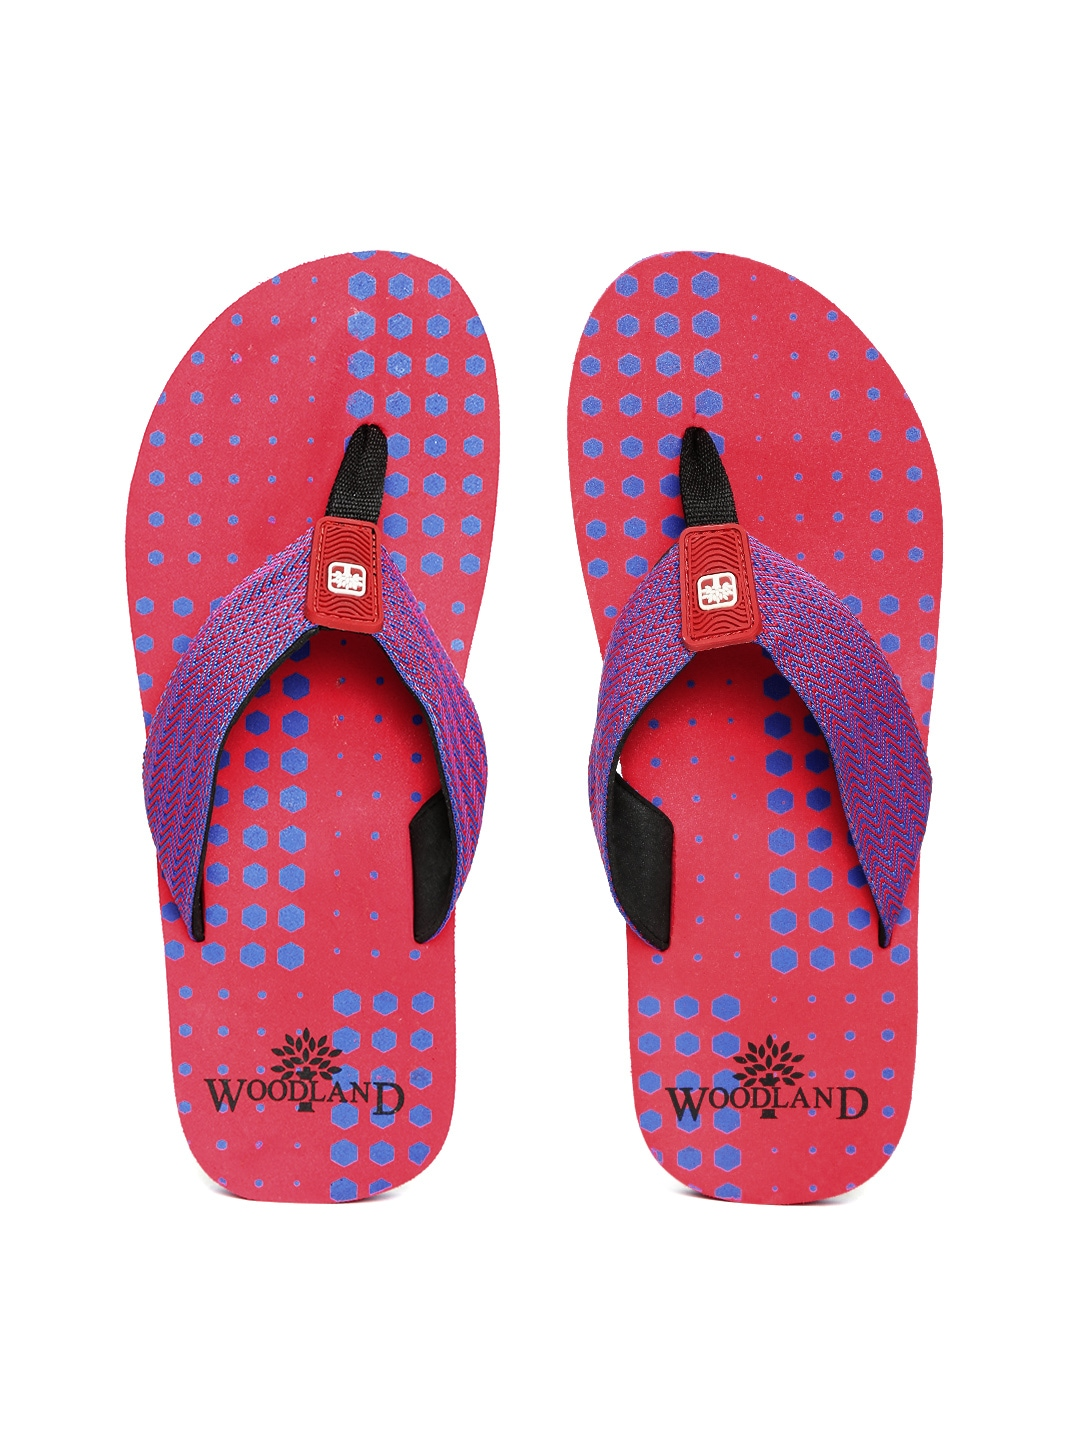 dc8465fd1 Woodland ff-1930115-red Proplanet Men Blue And Red Printed Flip Flops-  Price in India